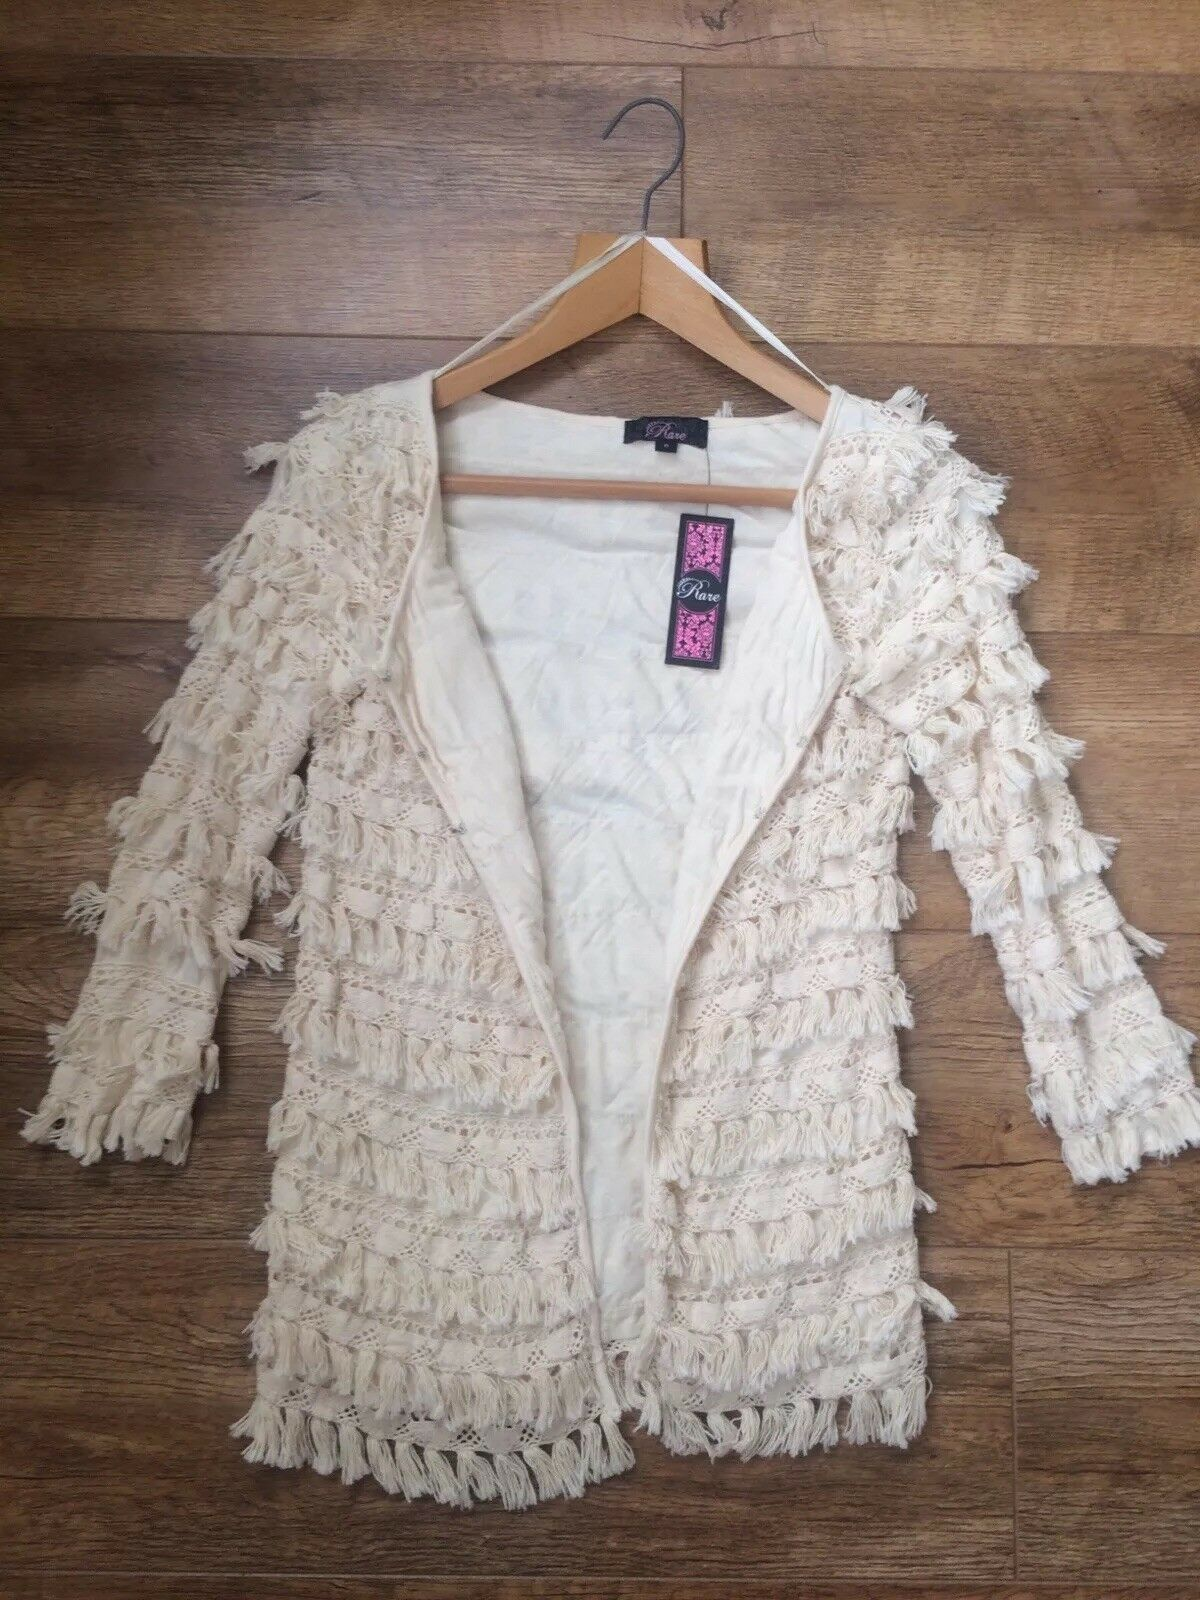 Brand New Rare London Topshop Cream Fringe Tassel Woven Boho Cardigan